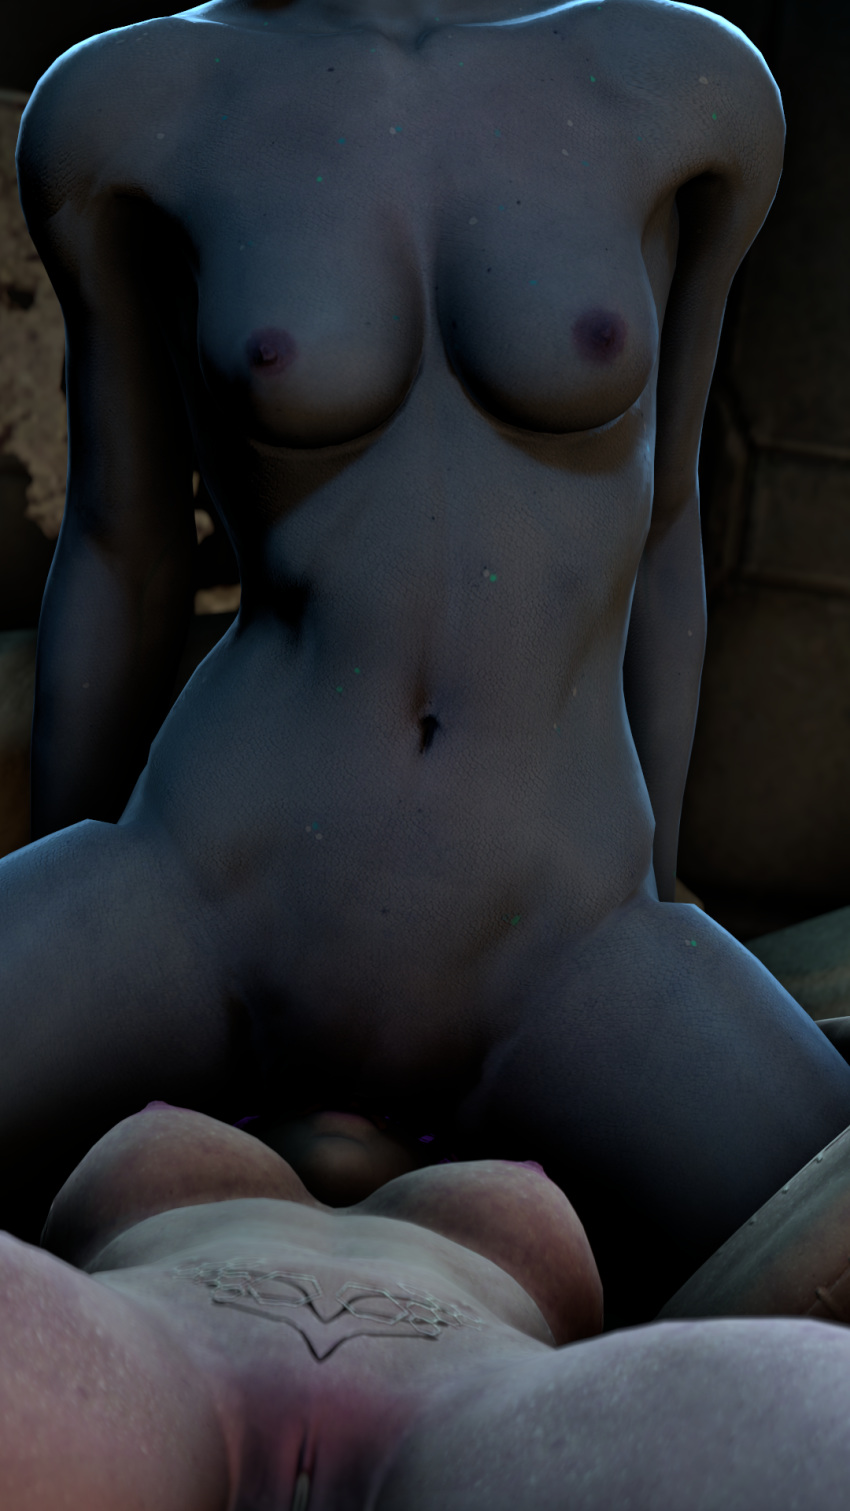 andromeda mass ryder effect nude Friday the 13th game kenny